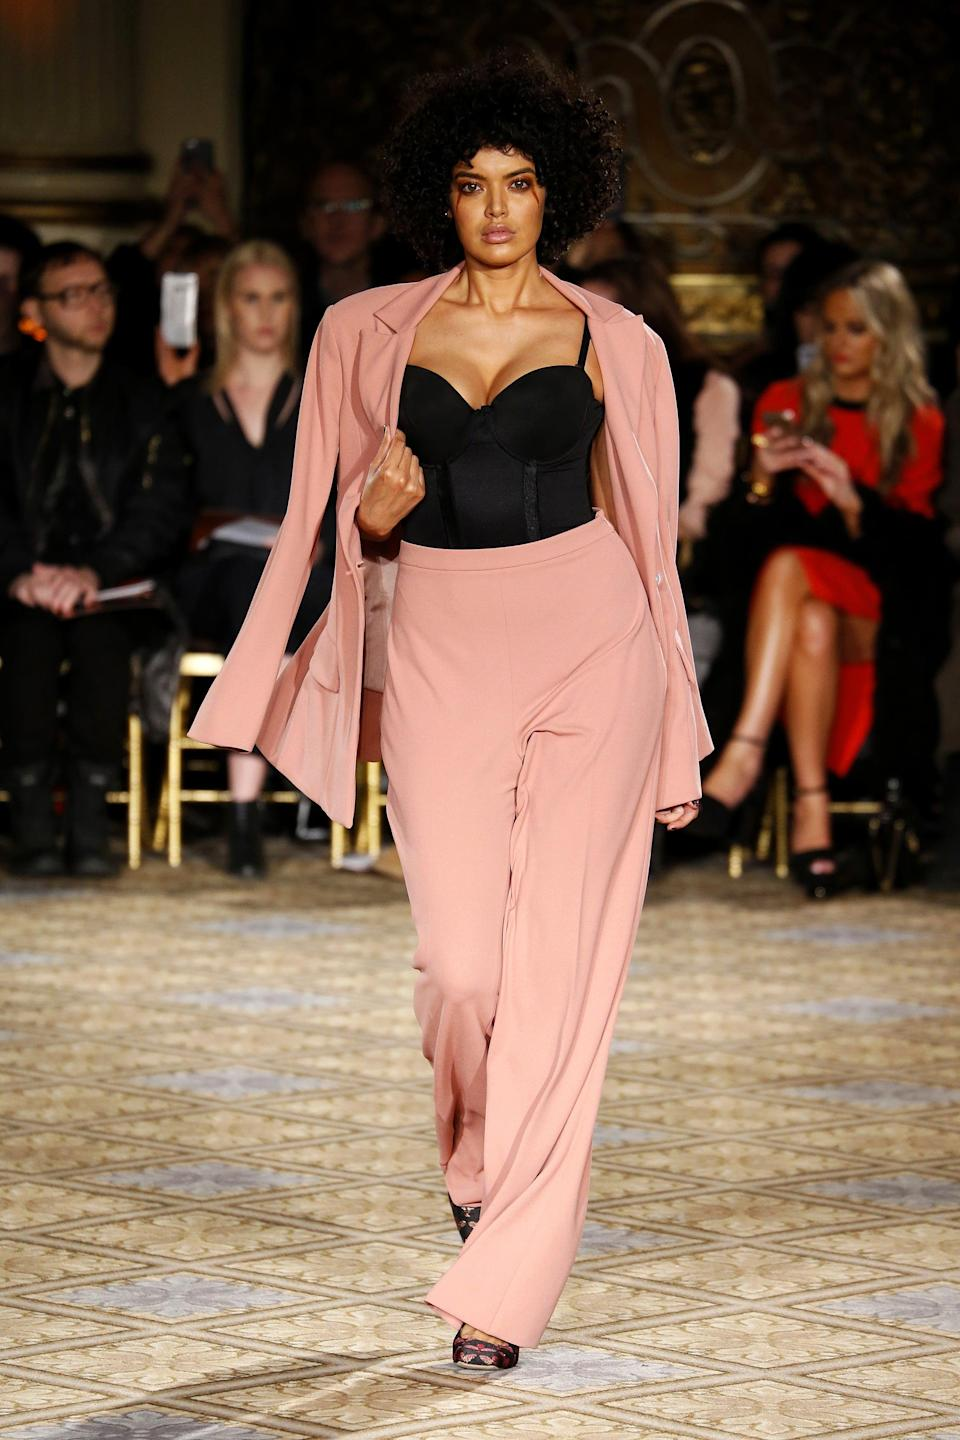 <p>London-born Saffi Karina has been defying industry standards since a former manager demanded she lose weight and she refused to do so, leaving that agency and joining IMG Models. Now, Karina can be seen in campaigns for L'Oréal and H&amp;M and has walked in a few of Christian Siriano's Fashion Week shows.</p>